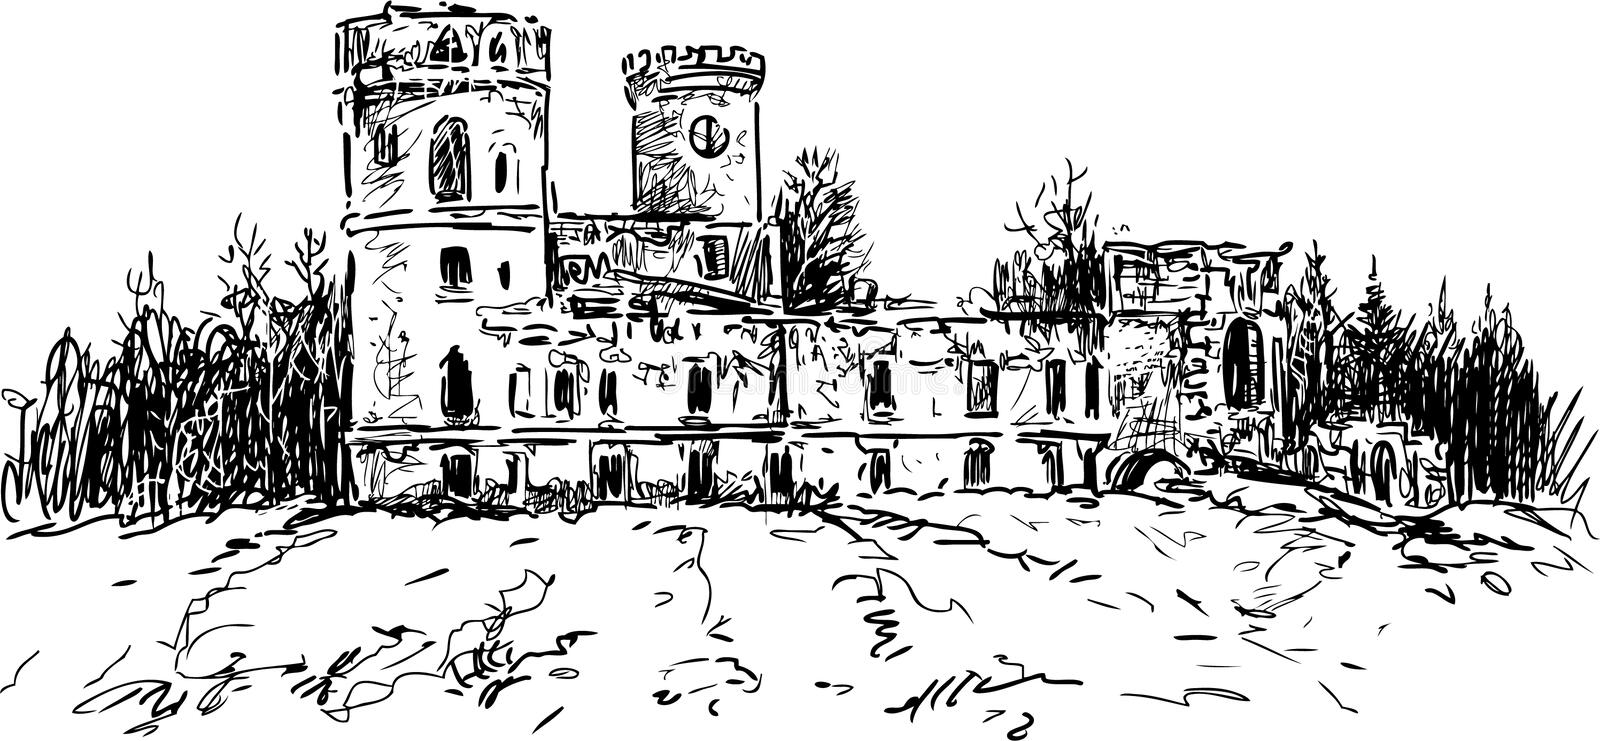 Rovine del castello royalty illustrazione gratis